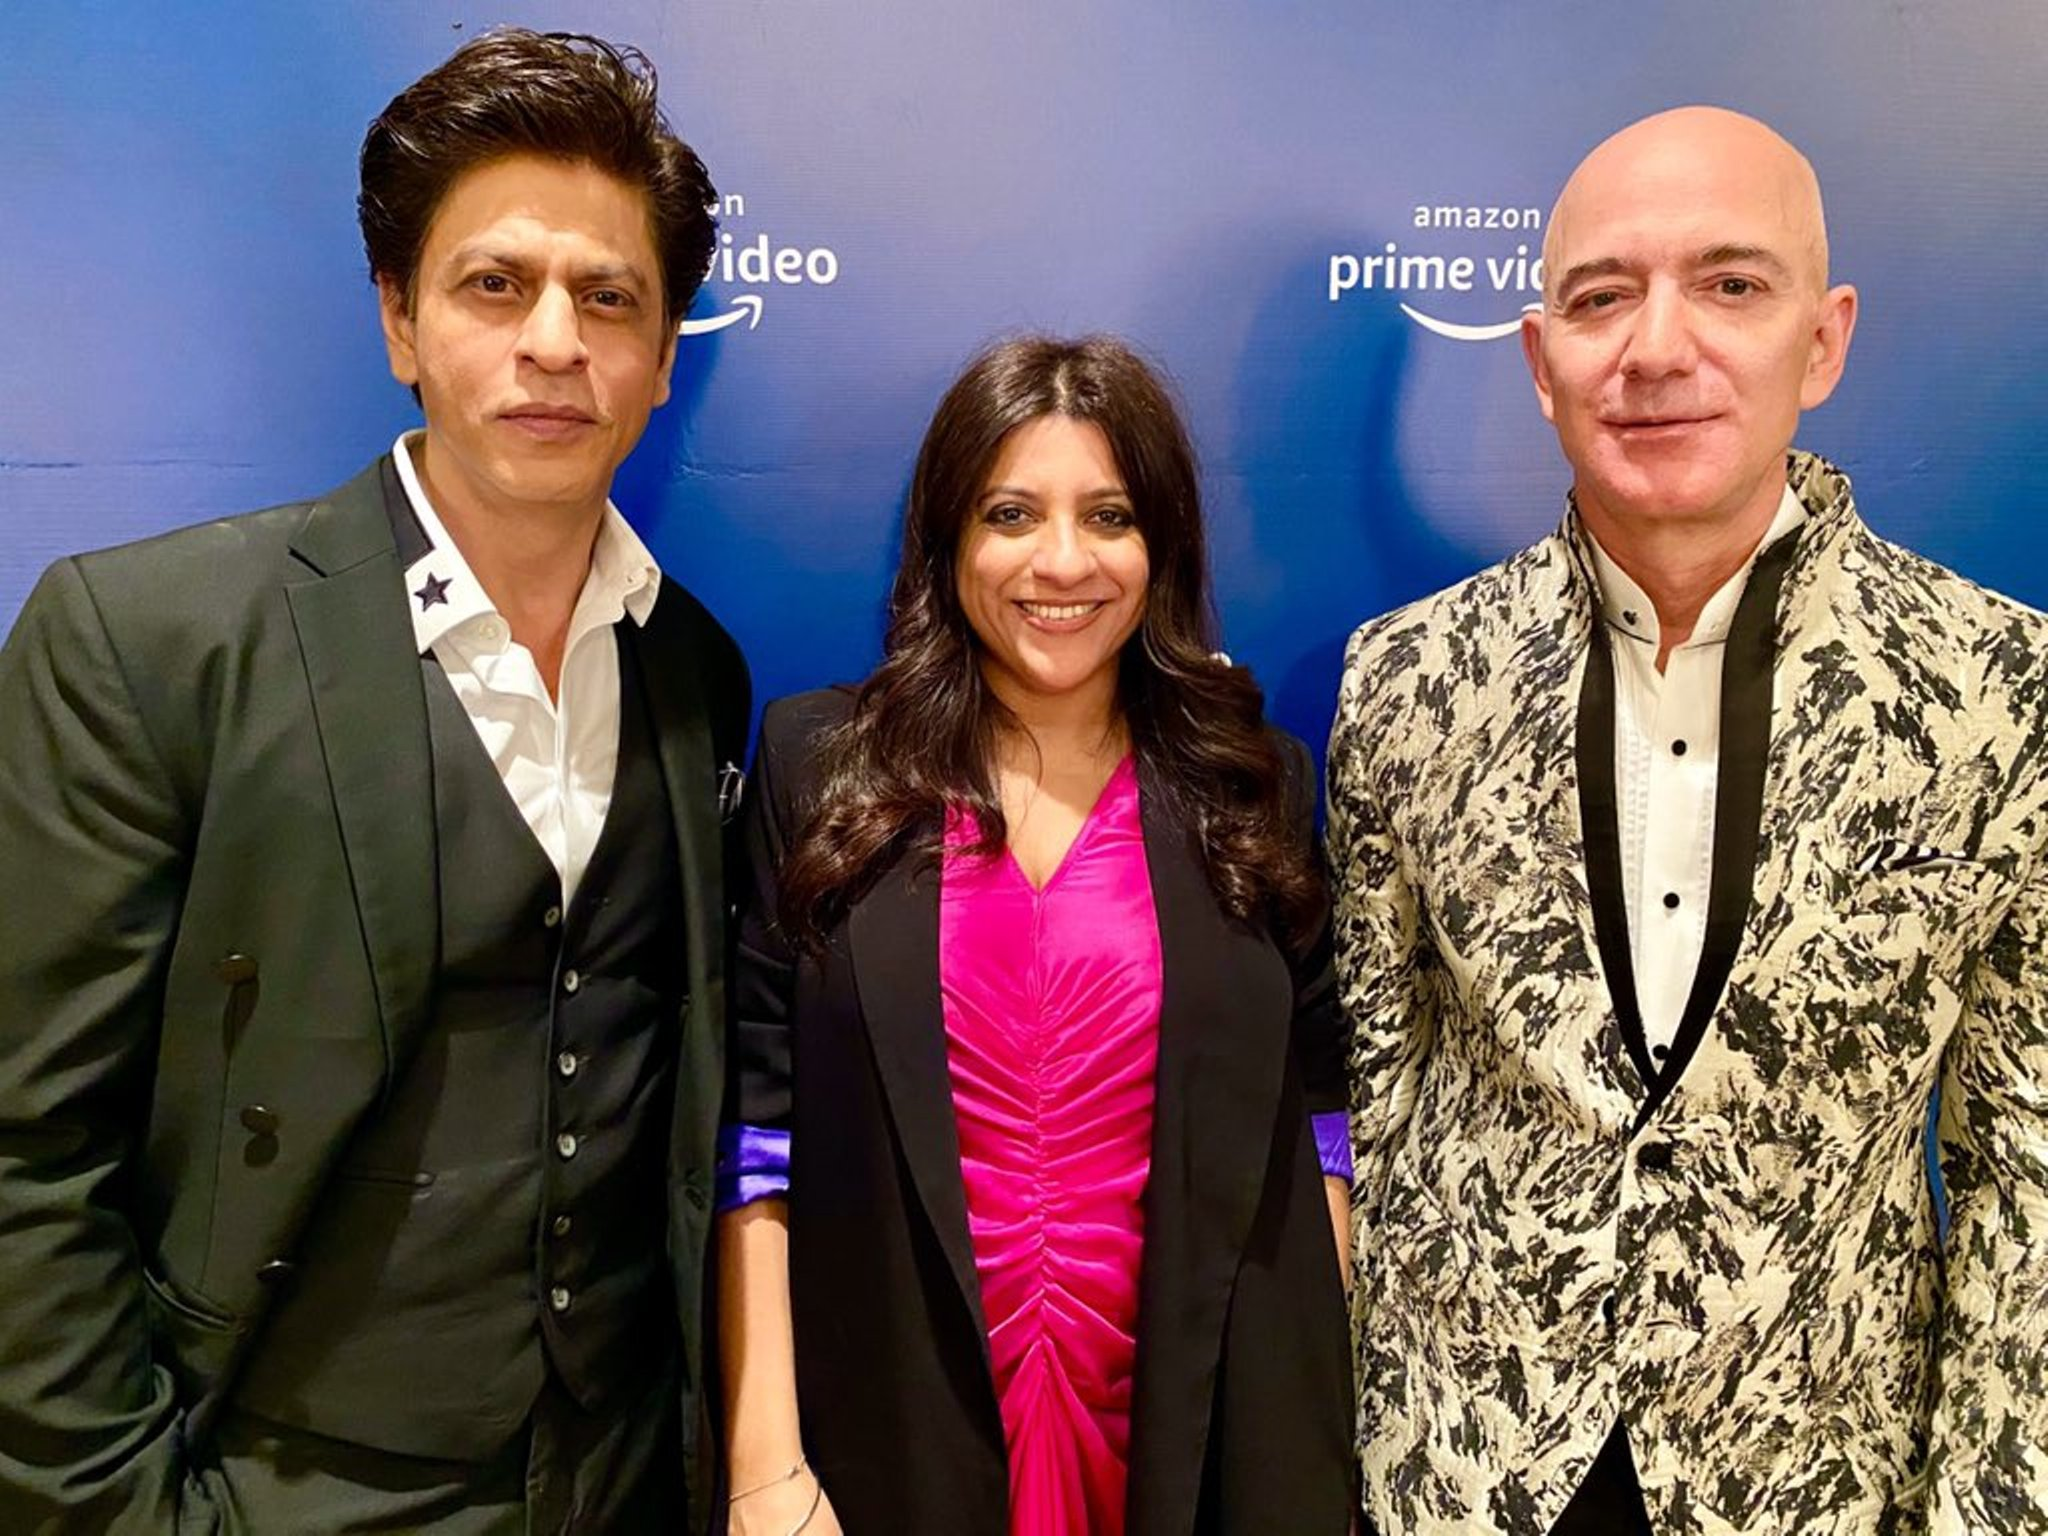 Amazon CEO Jeff Bezos (right) with Bollywood superstar Shah Rukh Khan (left) and Zoya Akhtar. Photo courtesy: Twitter/@iamsrk